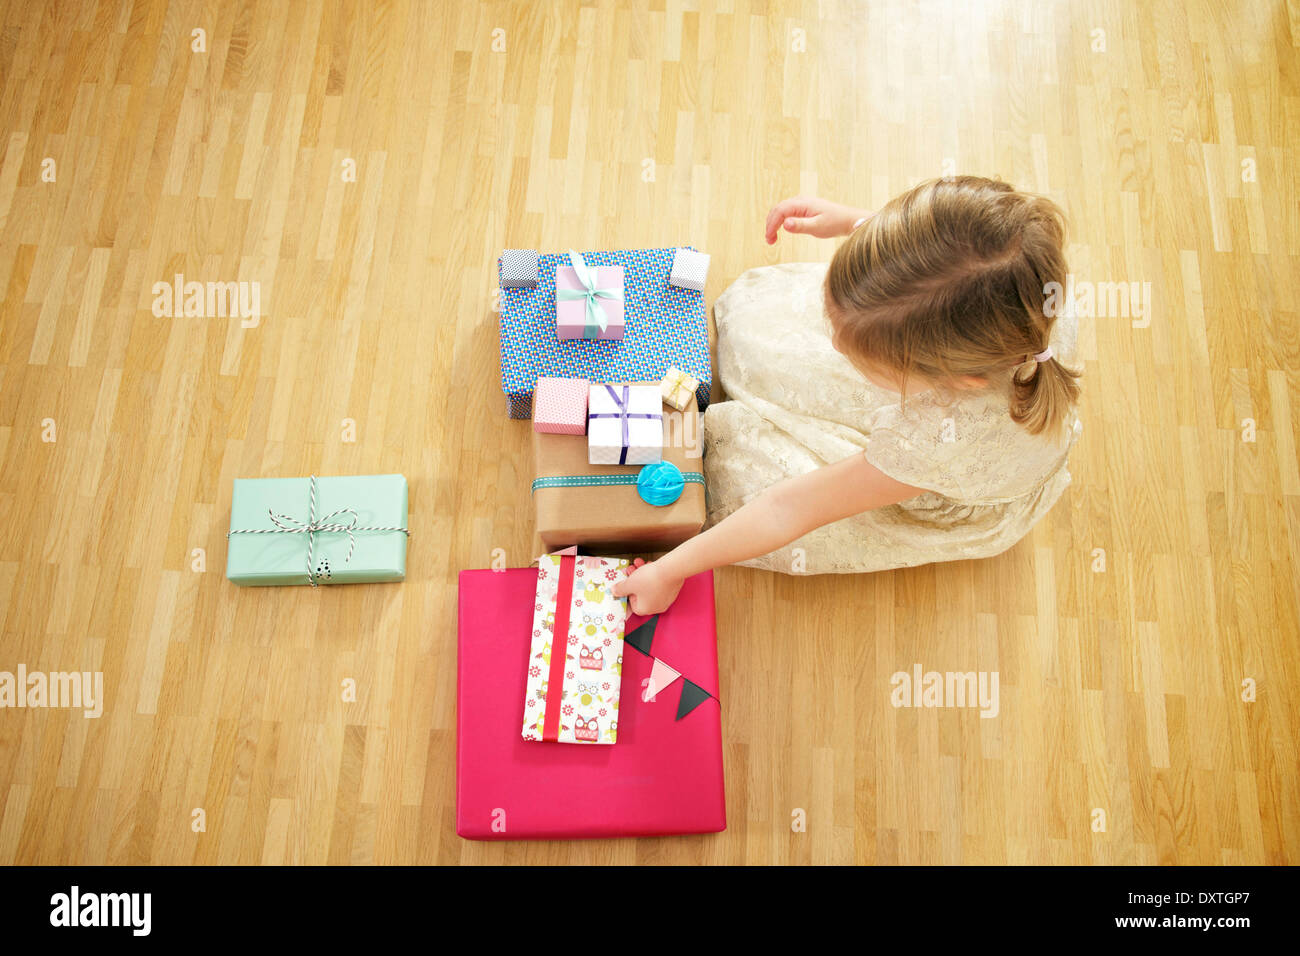 Girl on birthday party unwrapping gift boxes, Munich, Bavaria, Germany - Stock Image